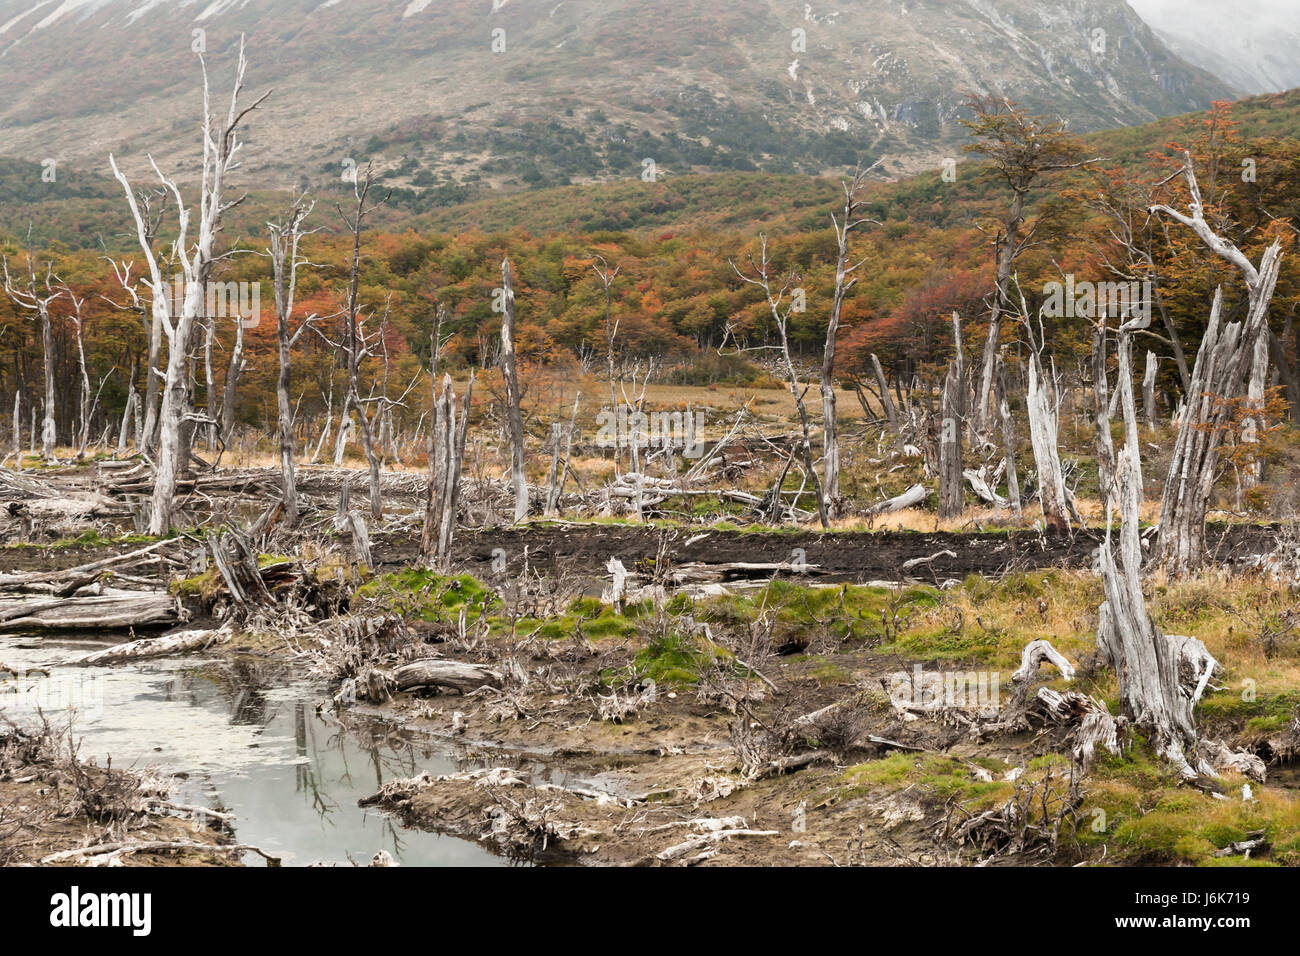 Ushuaia, Tierra del Fuego, Argentina. Environmental damage caused by beavers Stock Photo